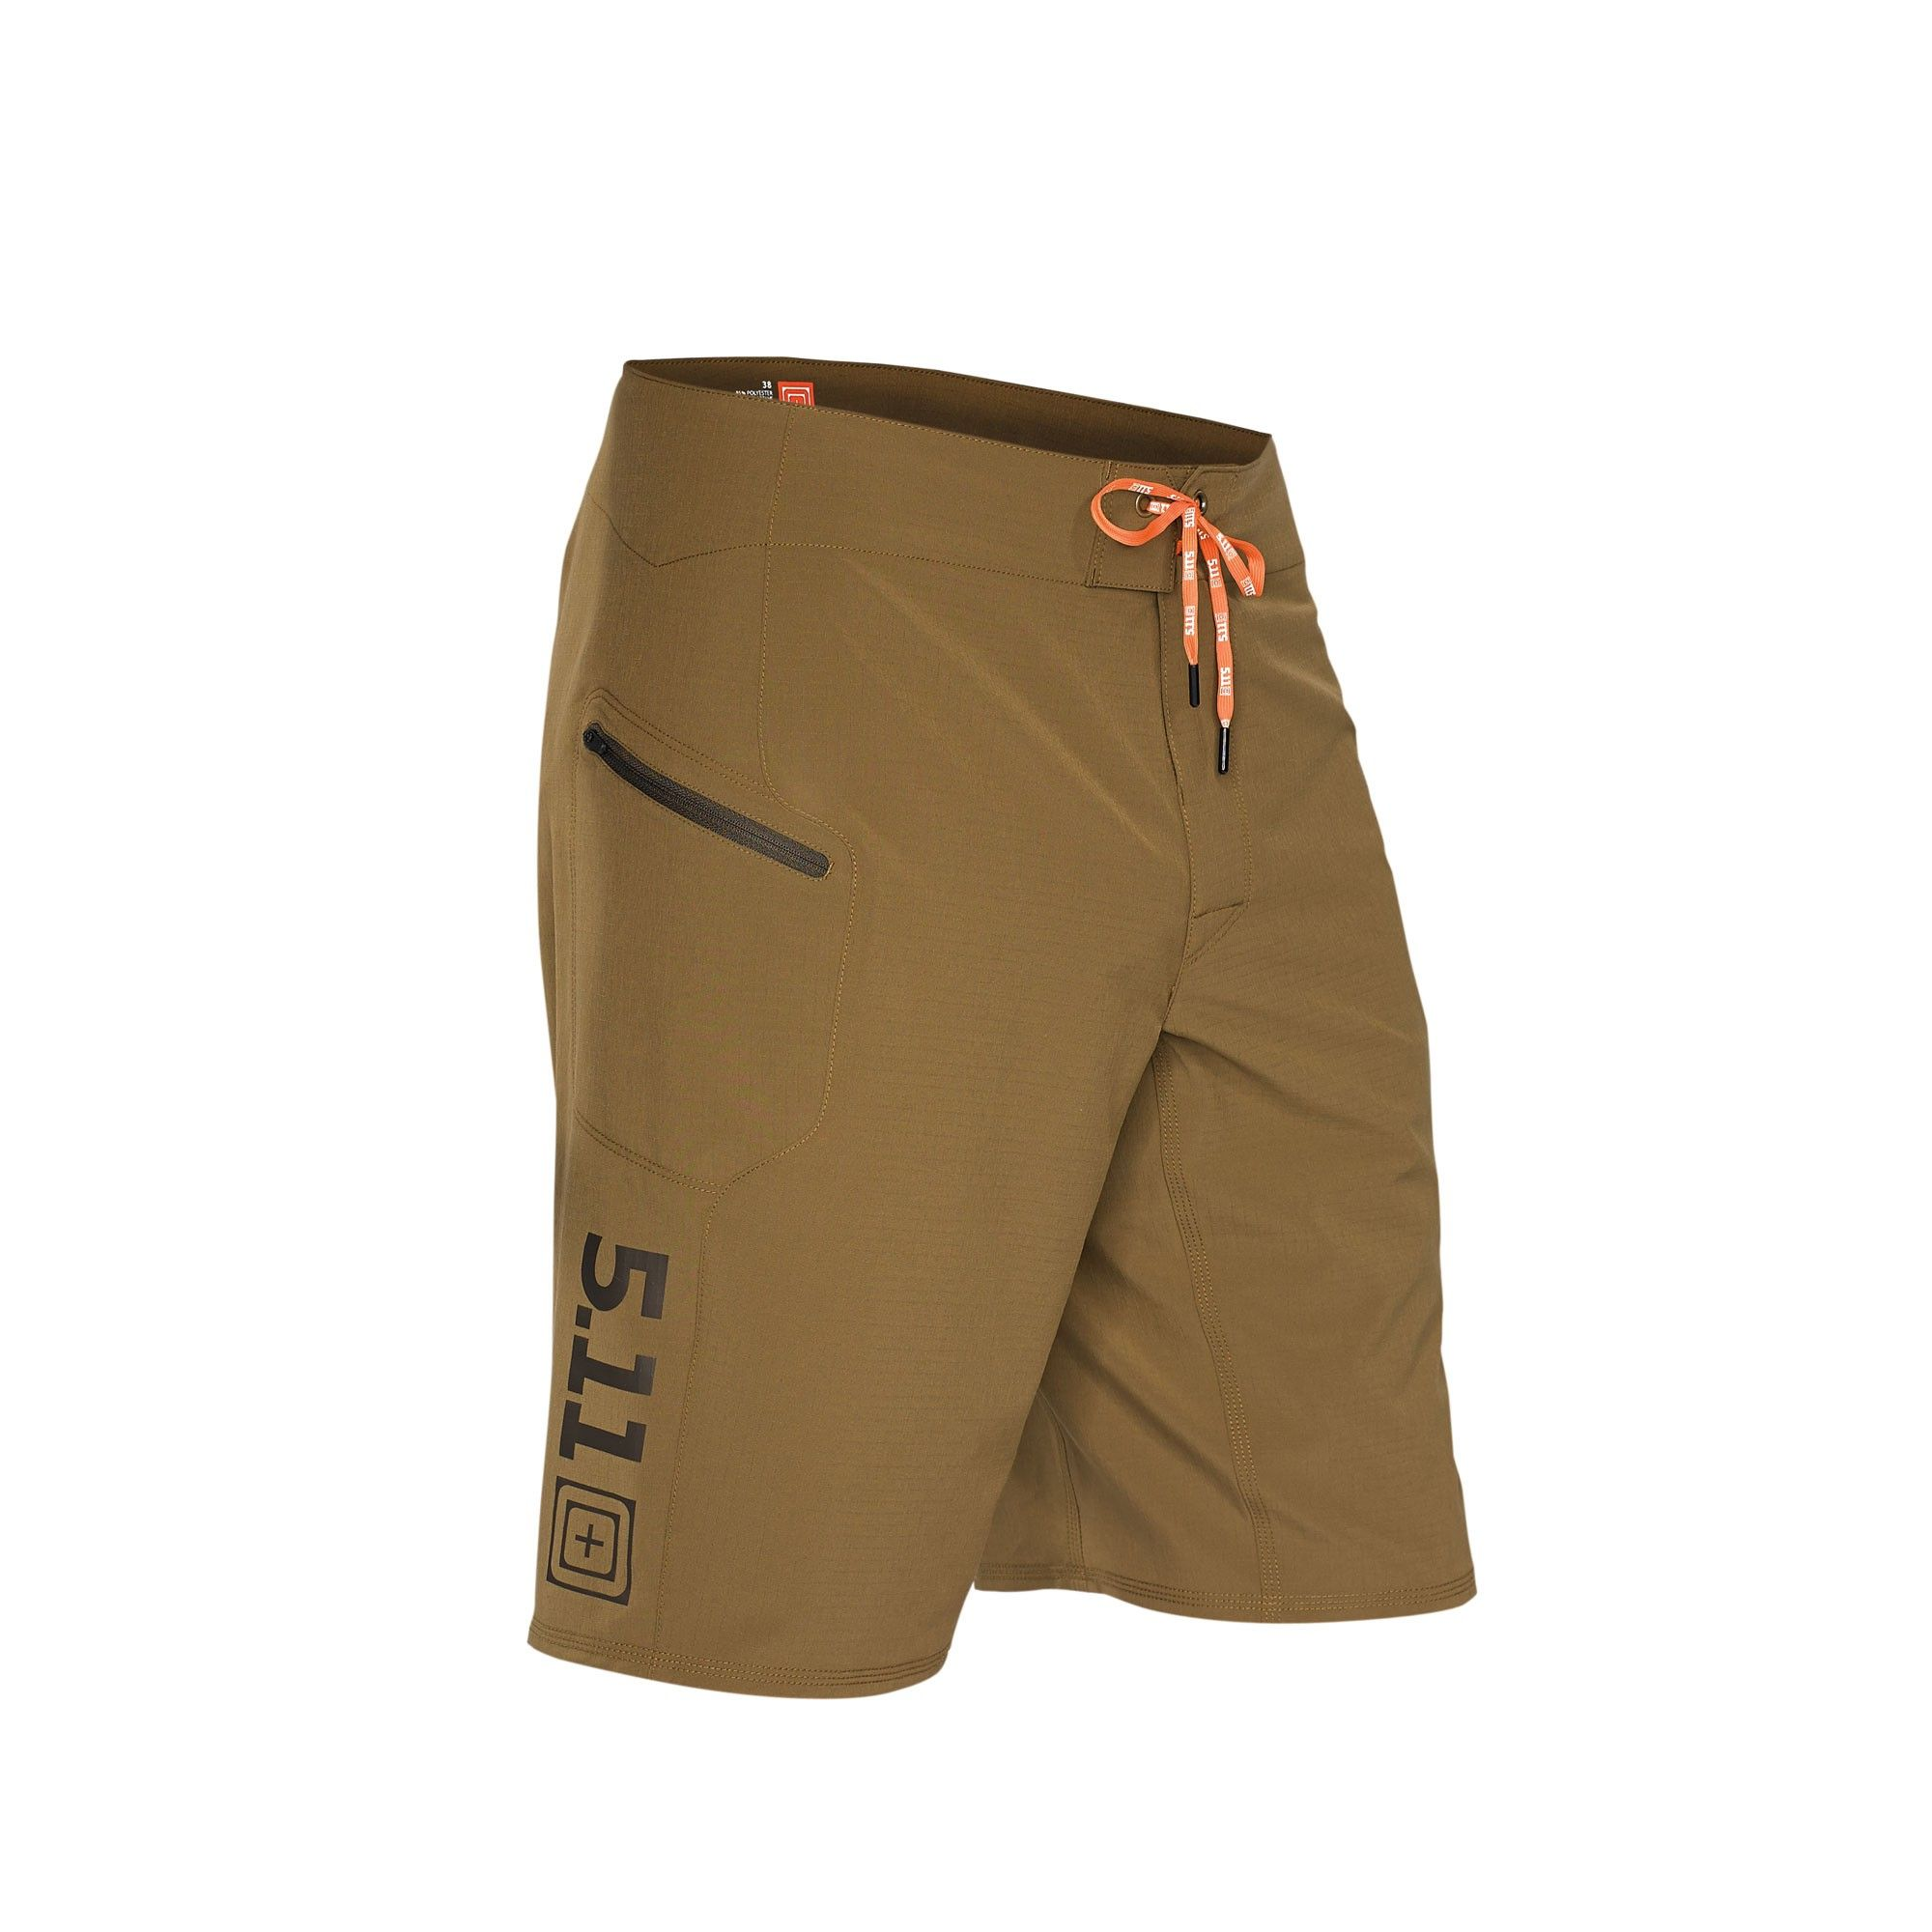 5 11 Recon Vandal Shorts Tactical Clothing Tactical Shorts Running Shorts Outfit